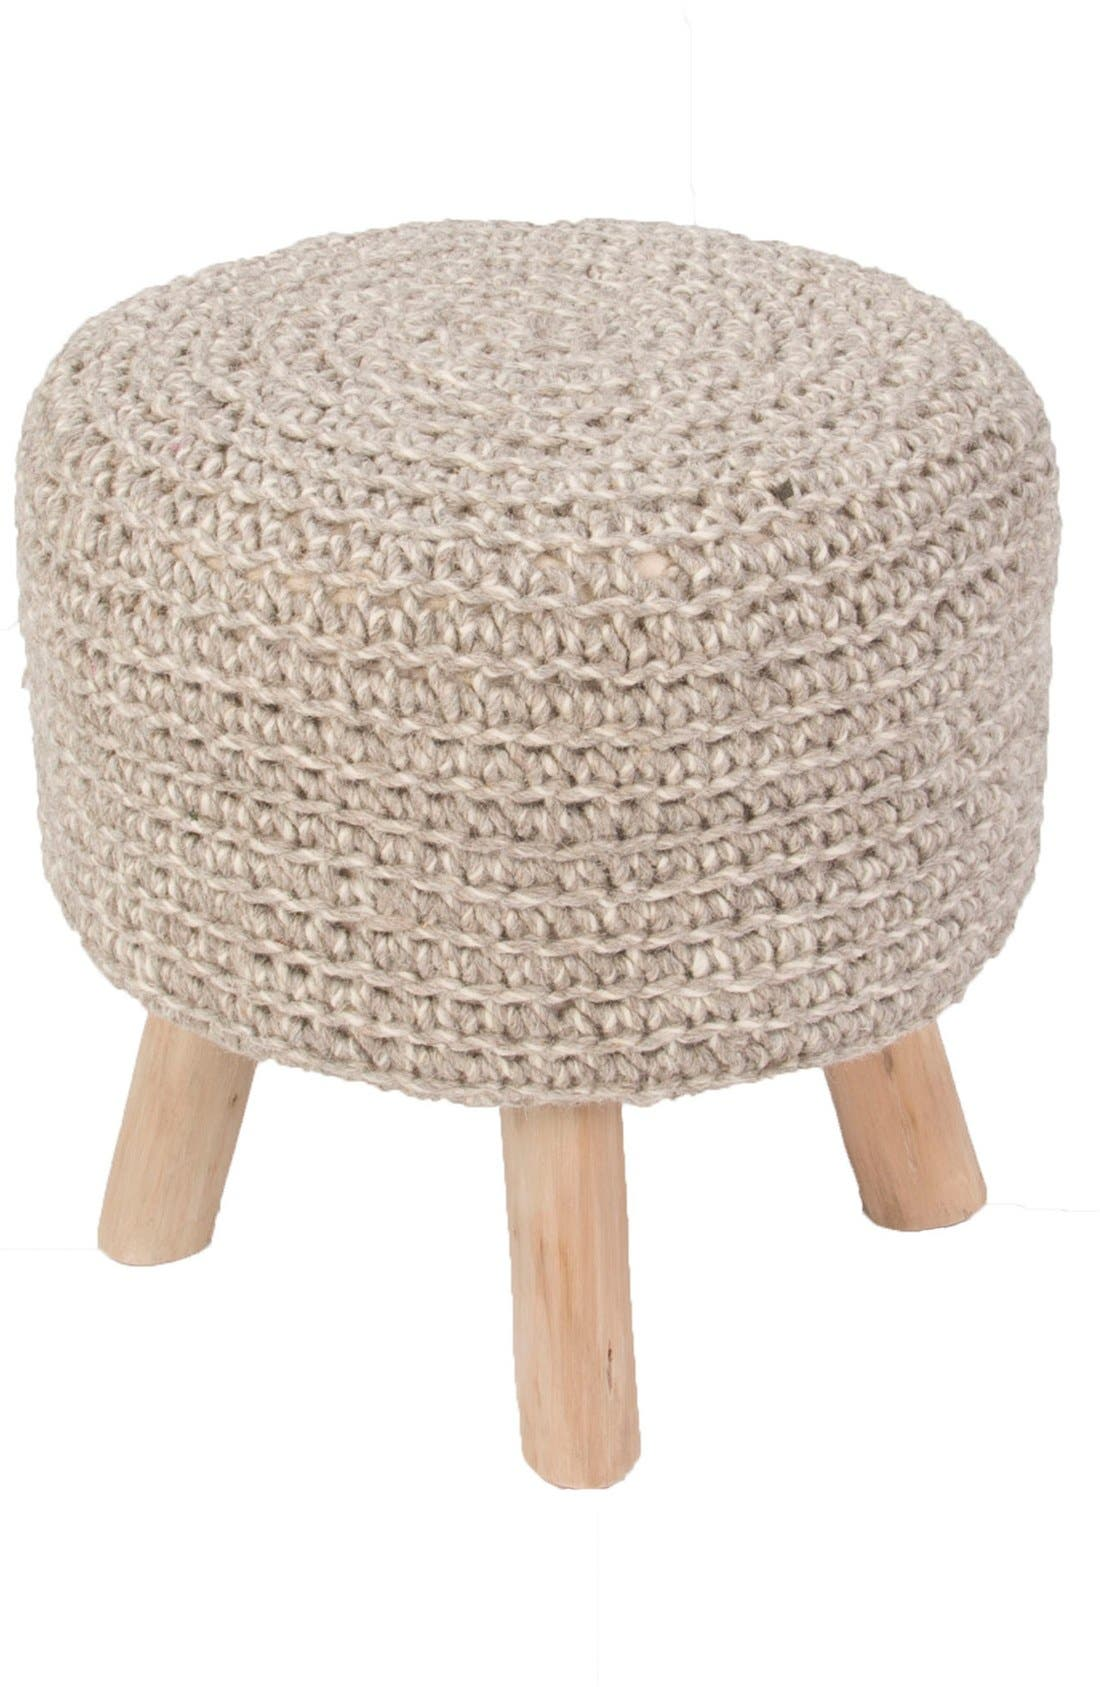 Alternate Image 1 Selected - Jaipur Pouf Stool